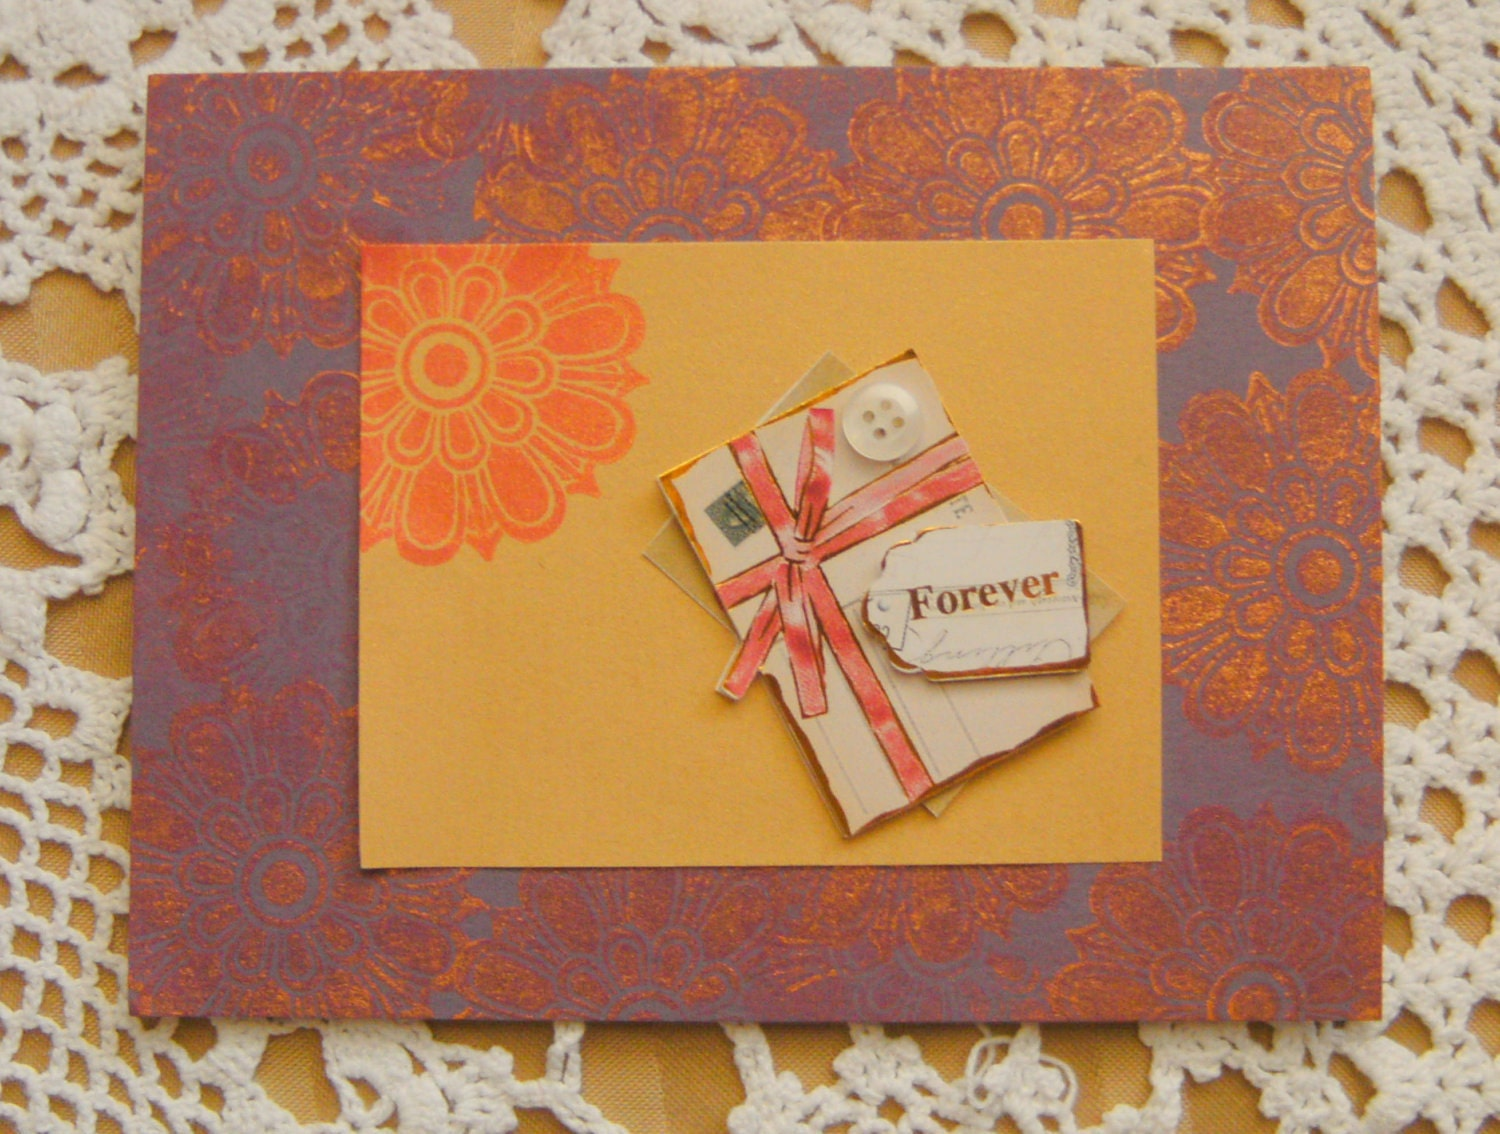 Forever Love Vintage Style Handmade Card - creativedesigns